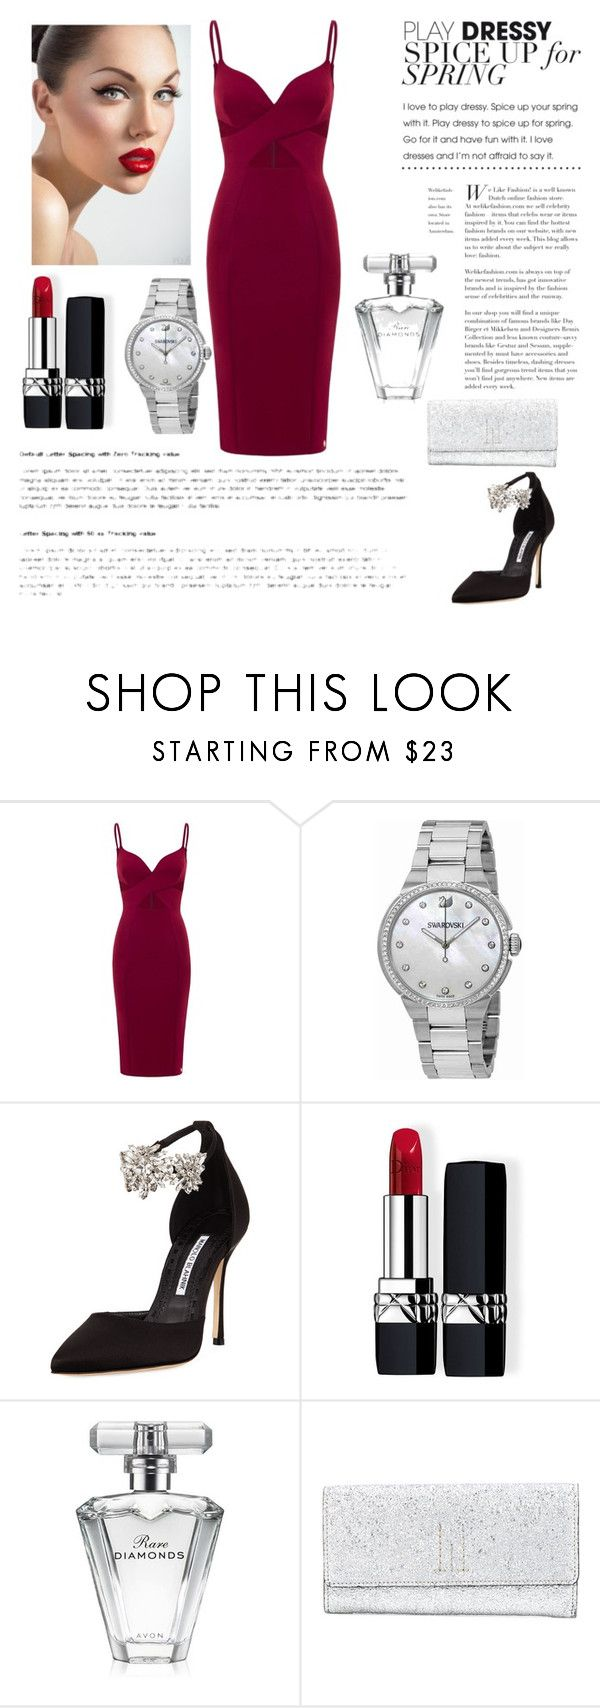 """Dress"" by anabelisstyle ❤ liked on Polyvore featuring Aloura London, Swarovski, Manolo Blahnik, Christian Dior, Avon and Golden Goose"